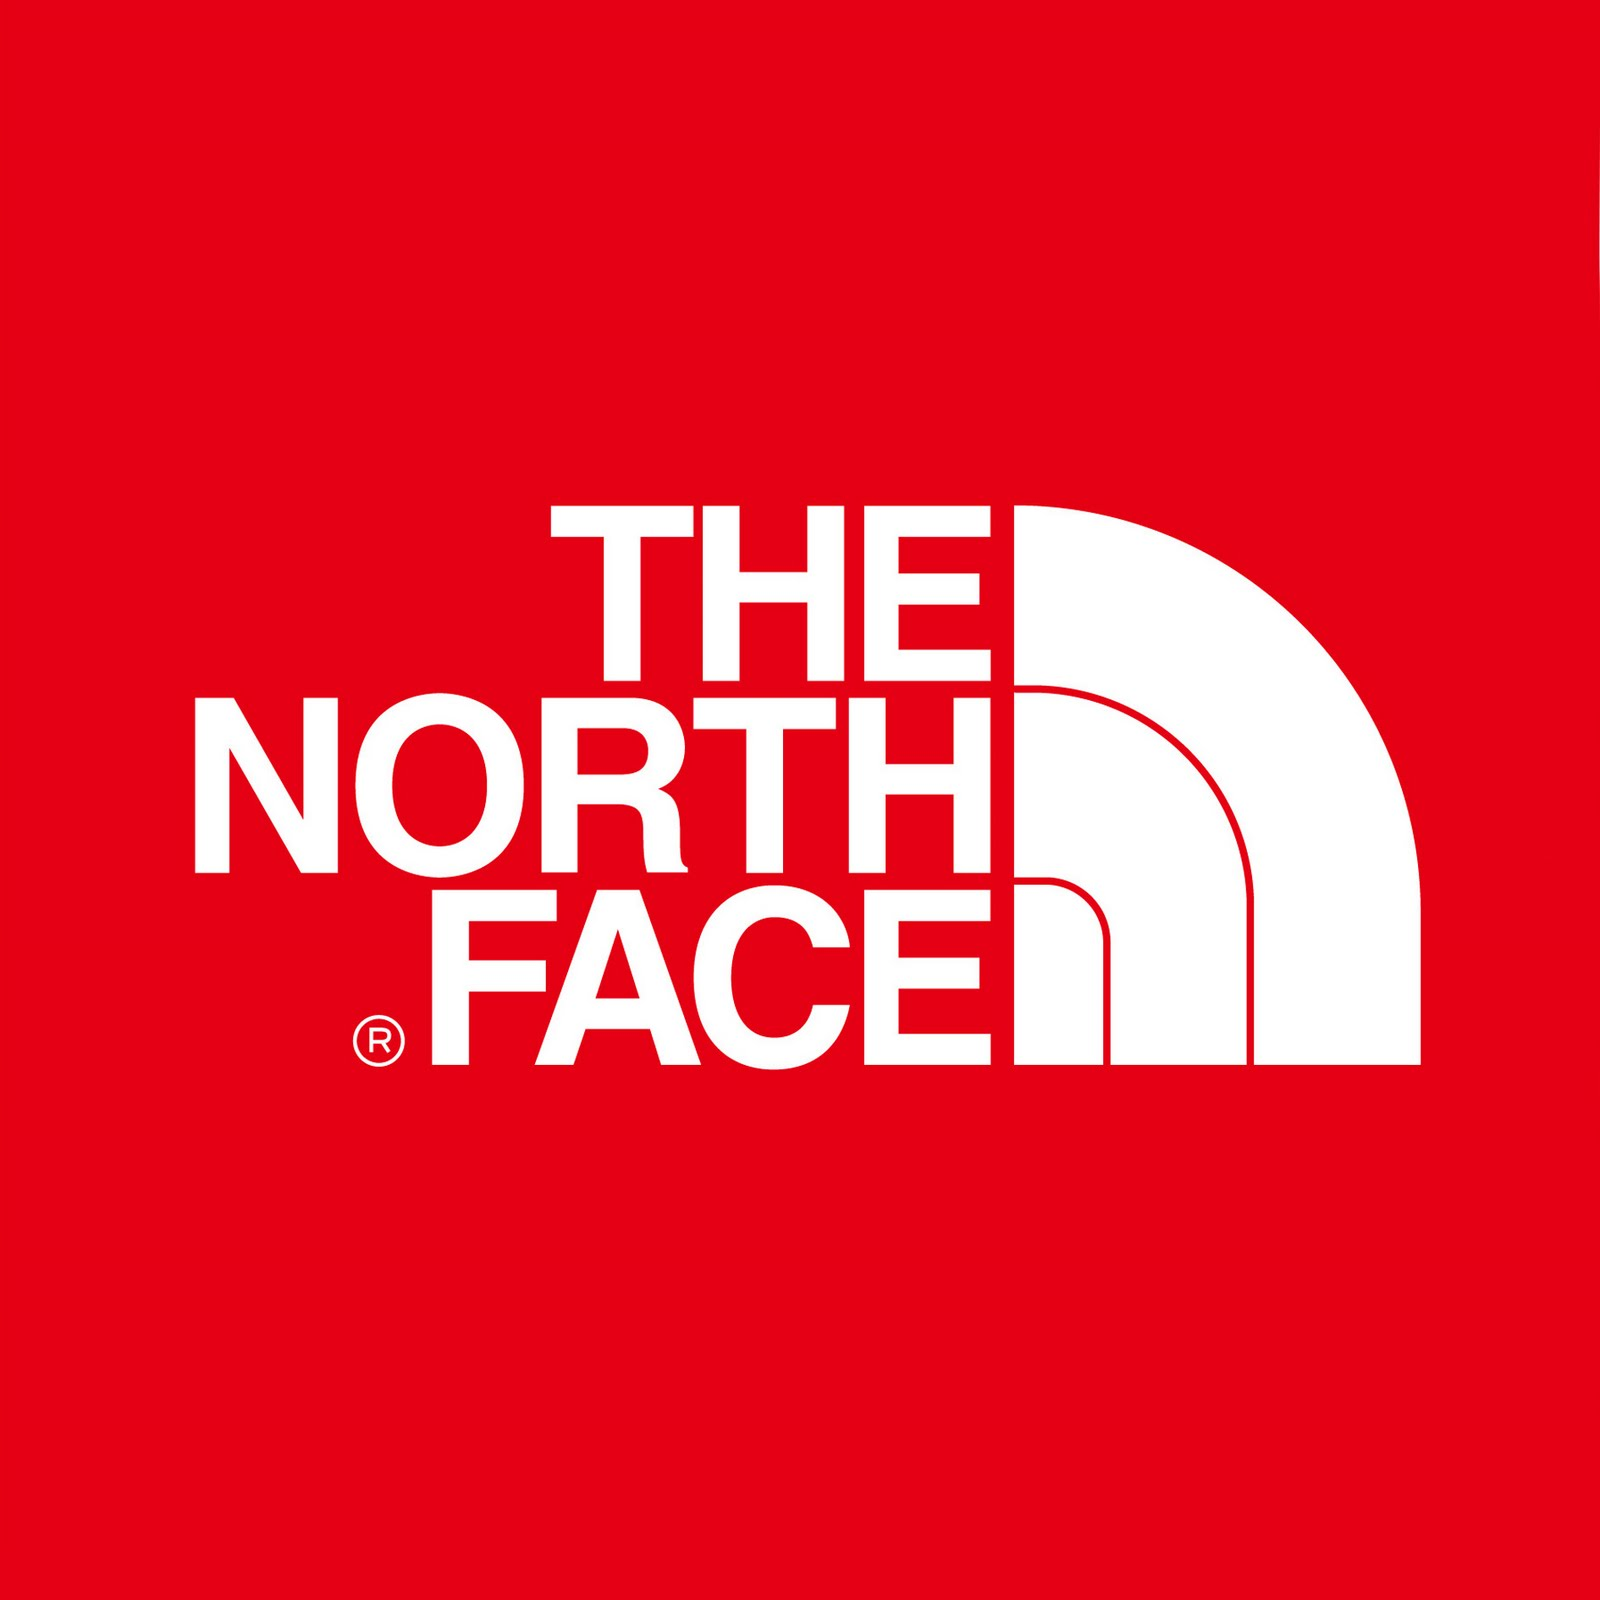 For more than 50 years, The North Face has made activewear and outdoor sports gear that exceeds your expectations.